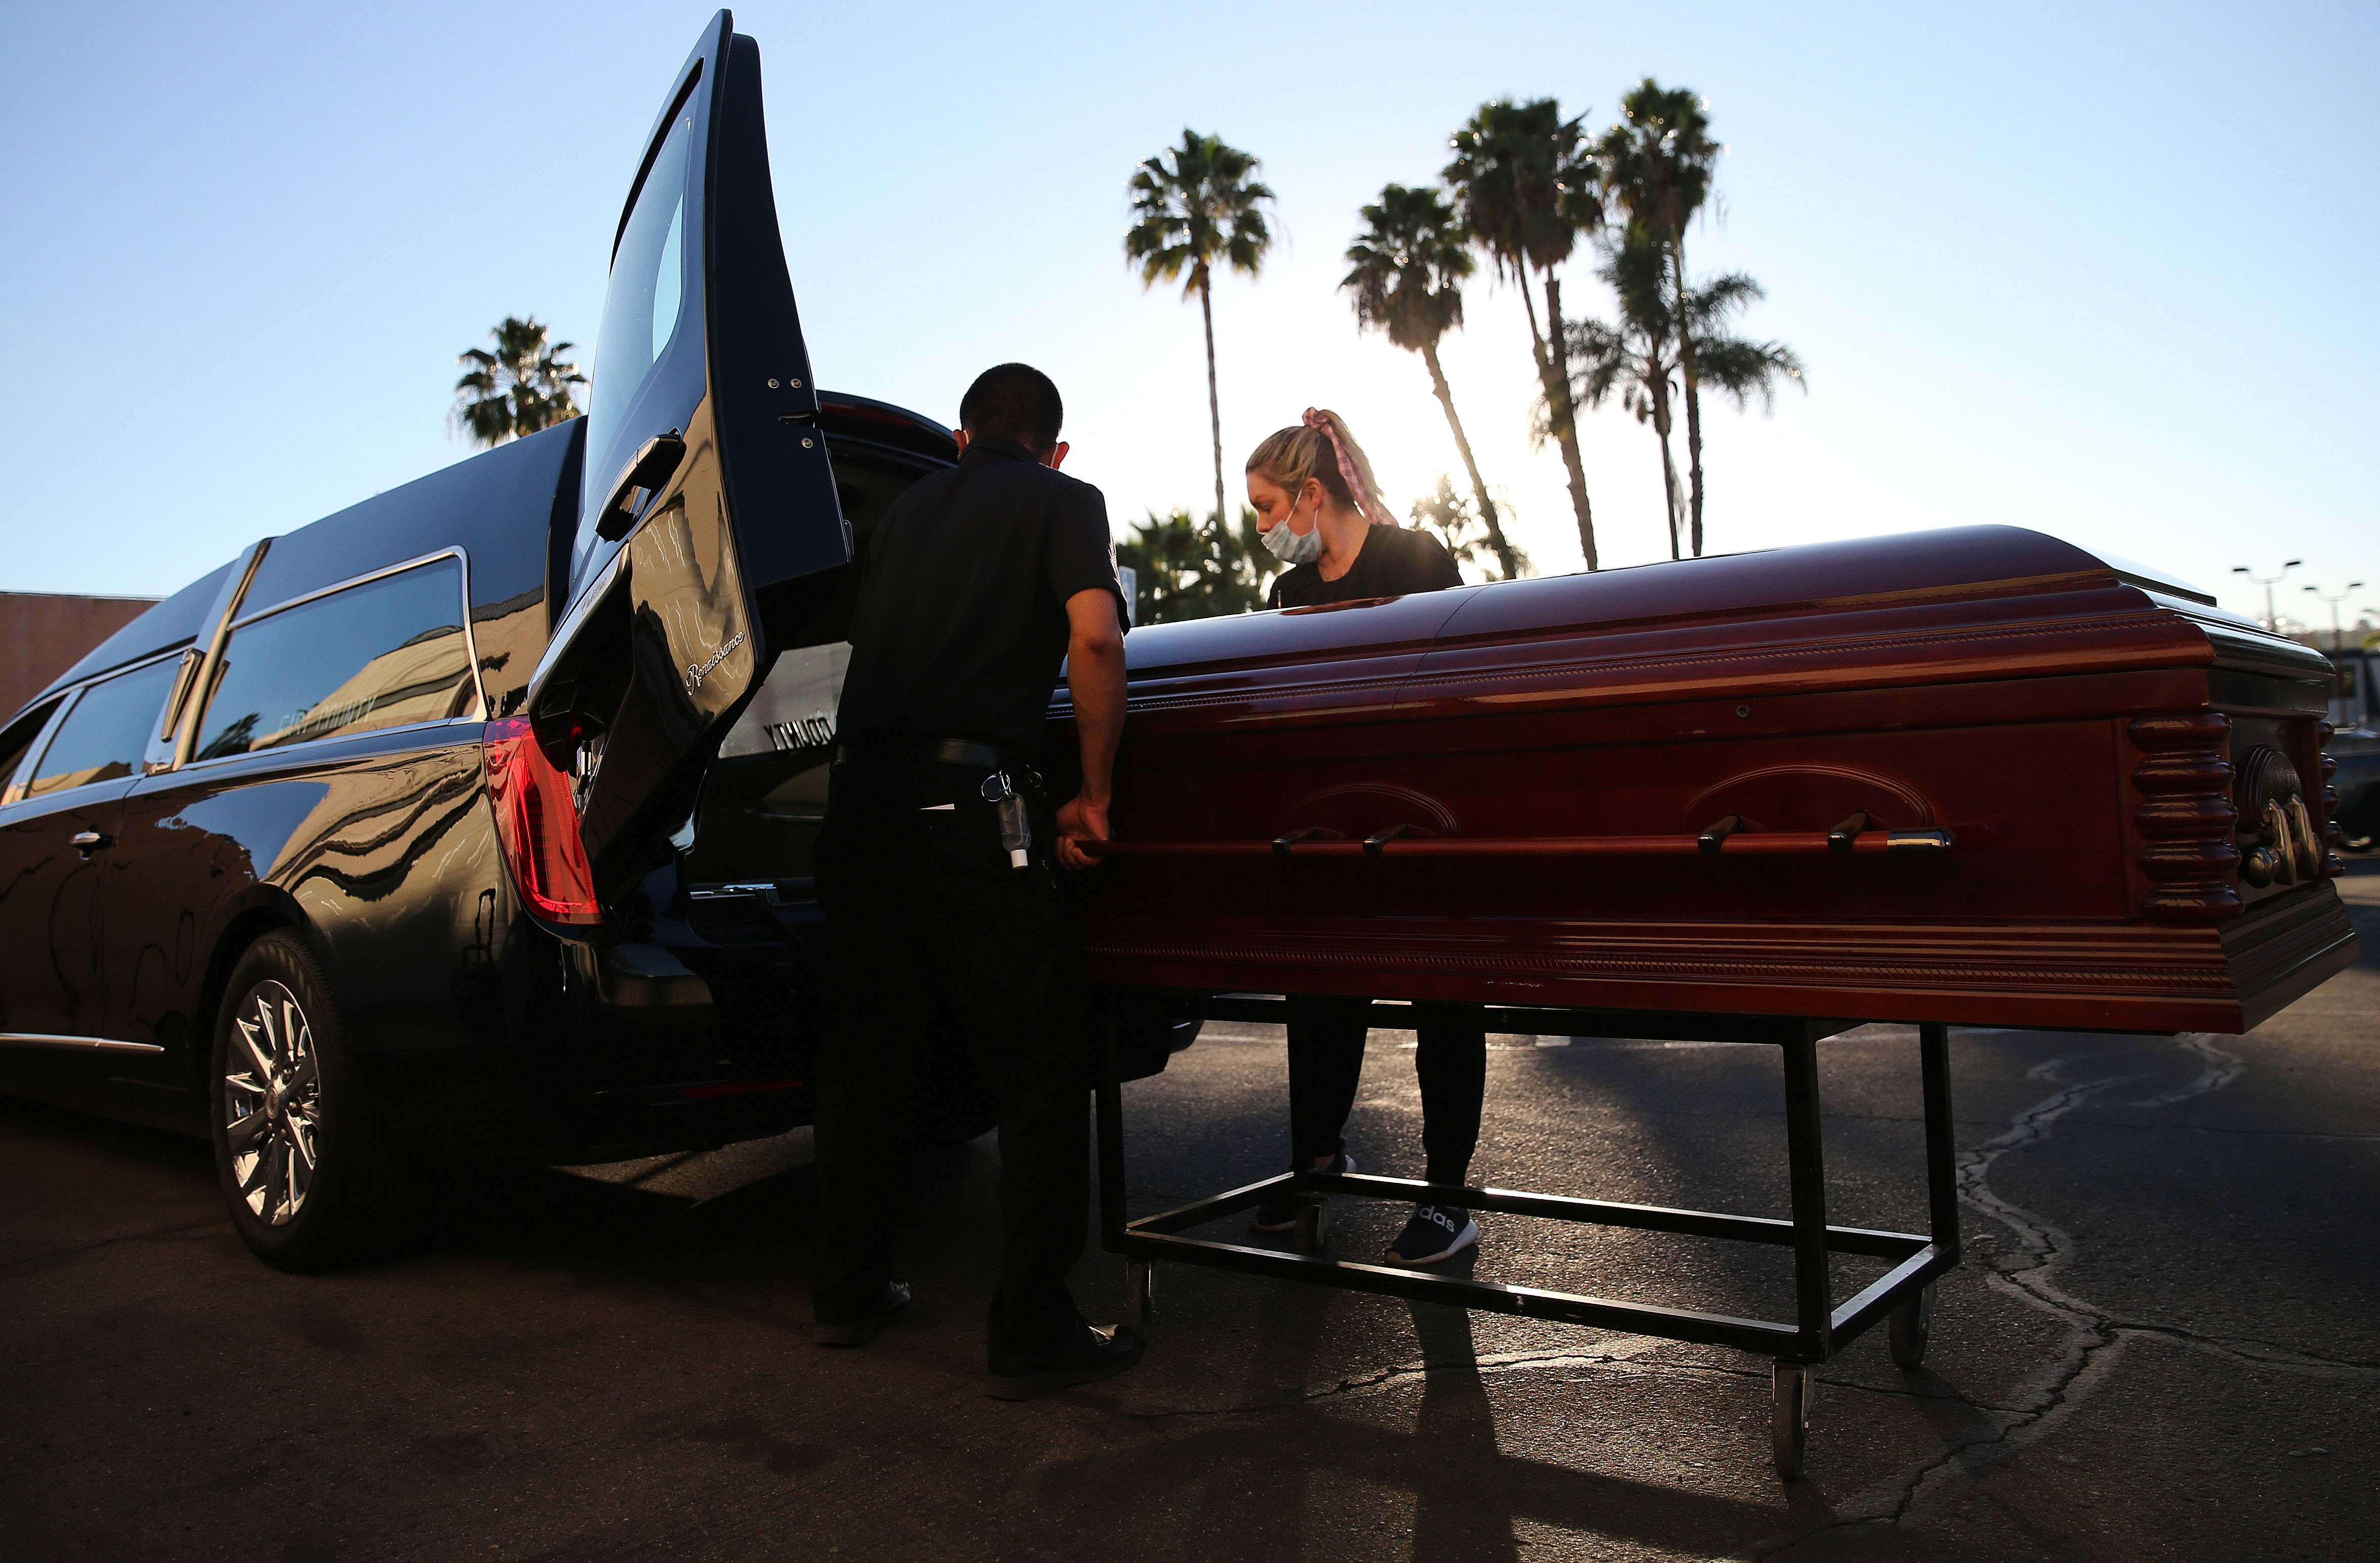 Embalmer and funeral director Kristy Oliver, right, and funeral attendant Sam Deras load the casket of someone said to have died after contracting Covid-19 into a hearse at East County Mortuary in El Cajon, California, on January 15.